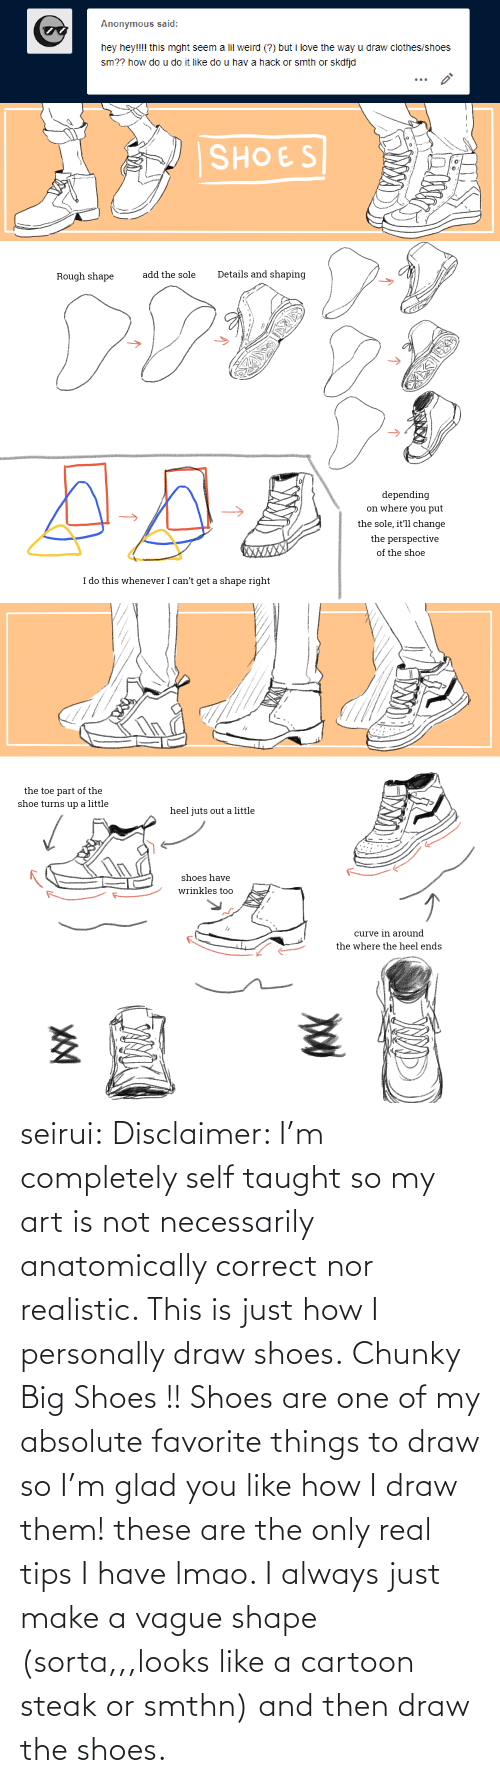 Not Necessarily: Anonymous said:  hey hey!!!! this mght seem a lil weird (?) but i love the way u draw clothes/shoes  sm?? how do u do it like do u hav a hack or smth or skdfjd   SHOES  Details and shaping  add the sole  Rough shape  depending  on where you put  the sole, it'll change  the perspective  XWXXX  of the shoe  I do this whenever I can't get a shape right   the toe part of the  shoe turns up a little  heel juts out a little  shoes have  wrinkles too  curve in around  the where the heel ends seirui: Disclaimer: I'm completely self taught so my art is not necessarily anatomically correct nor realistic. This is just how I personally draw shoes. Chunky Big Shoes !! Shoes are one of my absolute favorite things to draw so I'm glad you like how I draw them! these are the only real tips I have lmao. I always just make a vague shape (sorta,,,looks like a cartoon steak or smthn) and then draw the shoes.